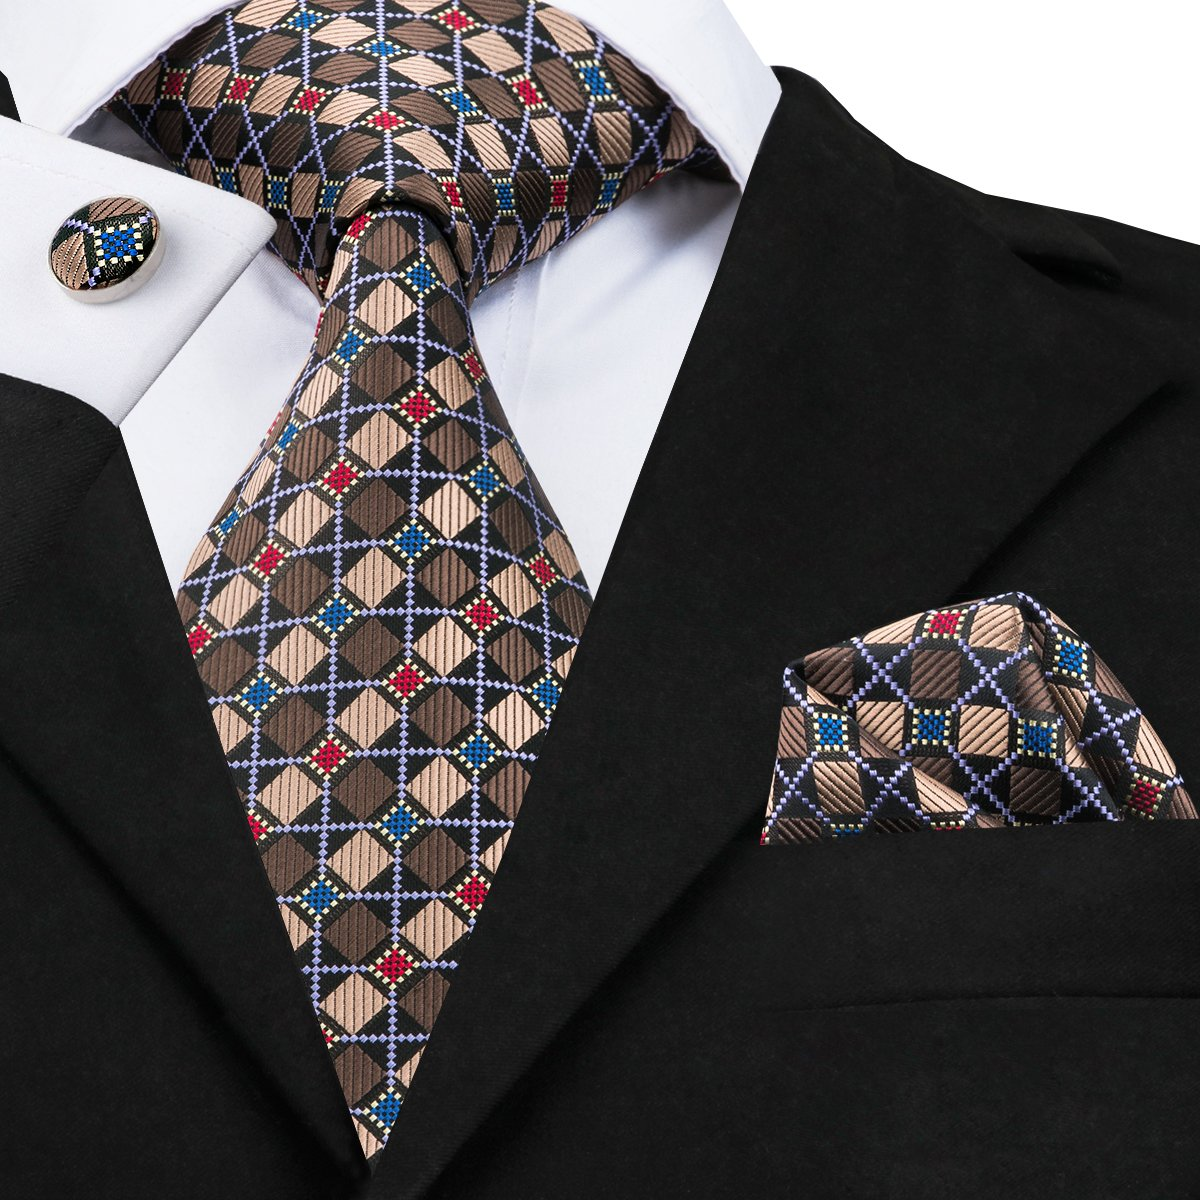 Plaid Ties for Men for Wedding Bussiness Tie Hanky Cufflinks 100/% Silk